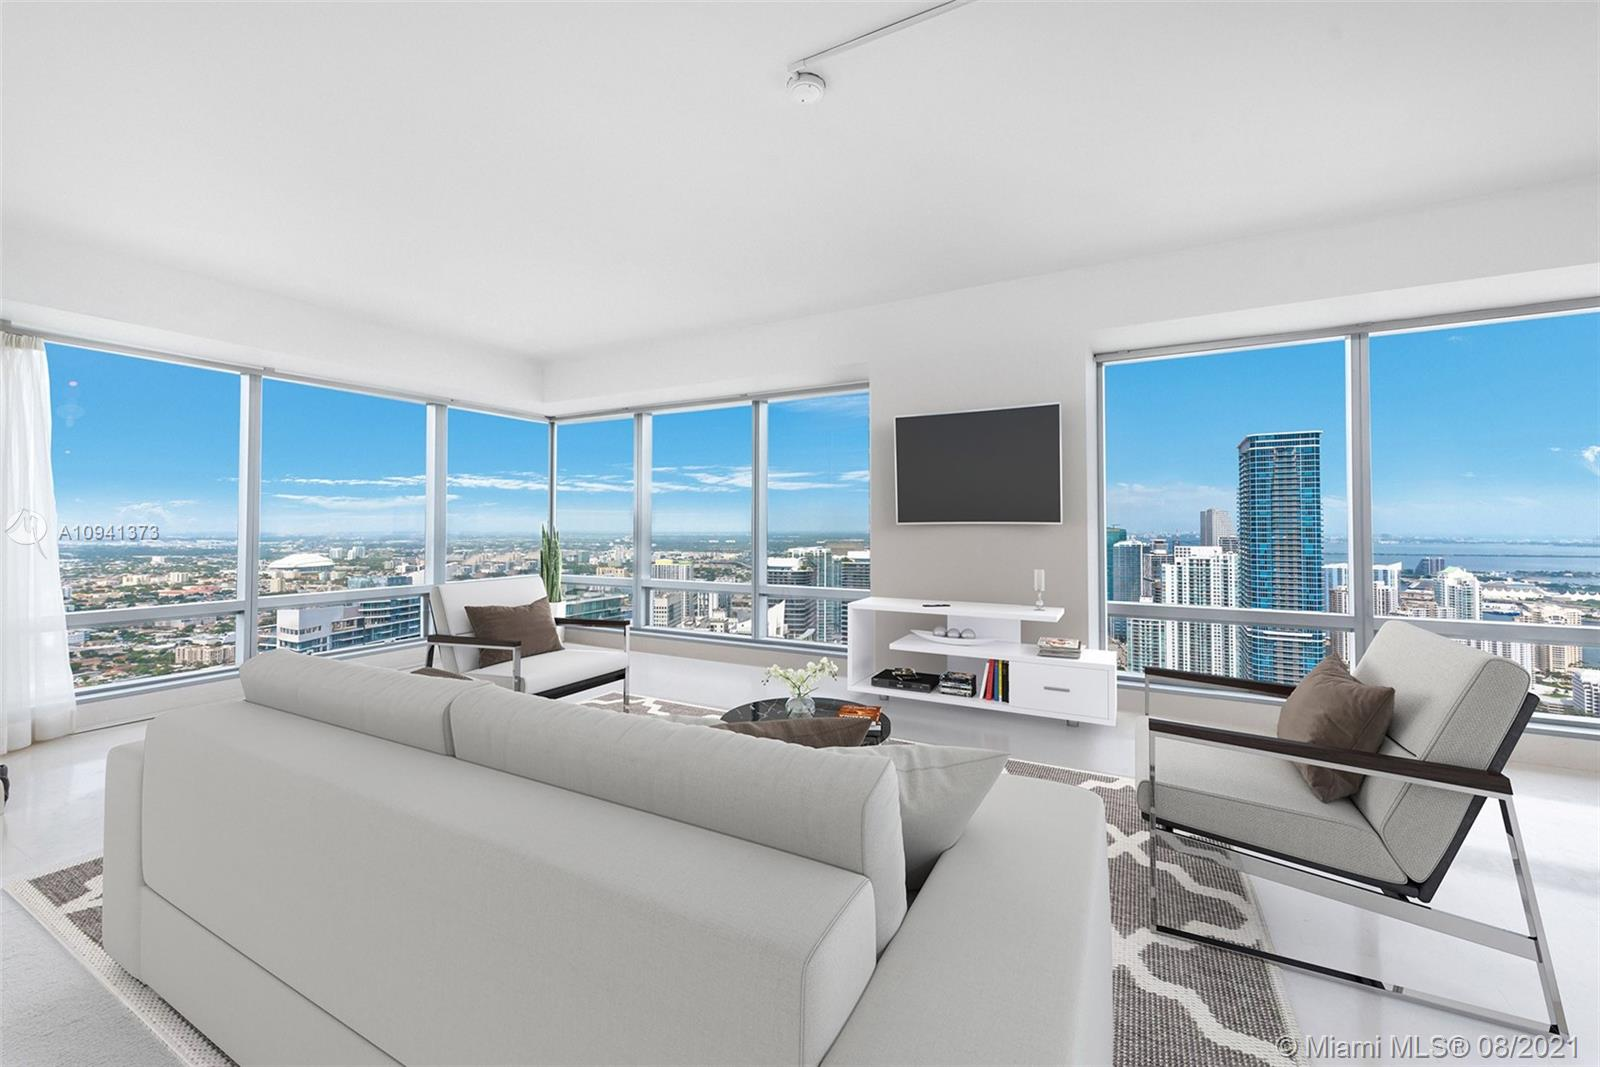 Prestigious Four Seasons Residences Miami… Stunning and incredible views of the bay and city from this spectacular 2 bedrooms / 2.5 baths unit on the 64th floor.  Enjoy all the amenities and lifestyle this building has to offer … room service, 24-hour concierge, gym, spa (Equinox), restaurants, business center, pools, valet service, and much more all at your fingertips.  With incredible finishes throughout and top of the line appliances, plus floor to ceiling windows that allow for great natural light, you can make this your dream home.  Walk to the shops, restaurants, and financial district but yet be in the luxury of Four Seasons.